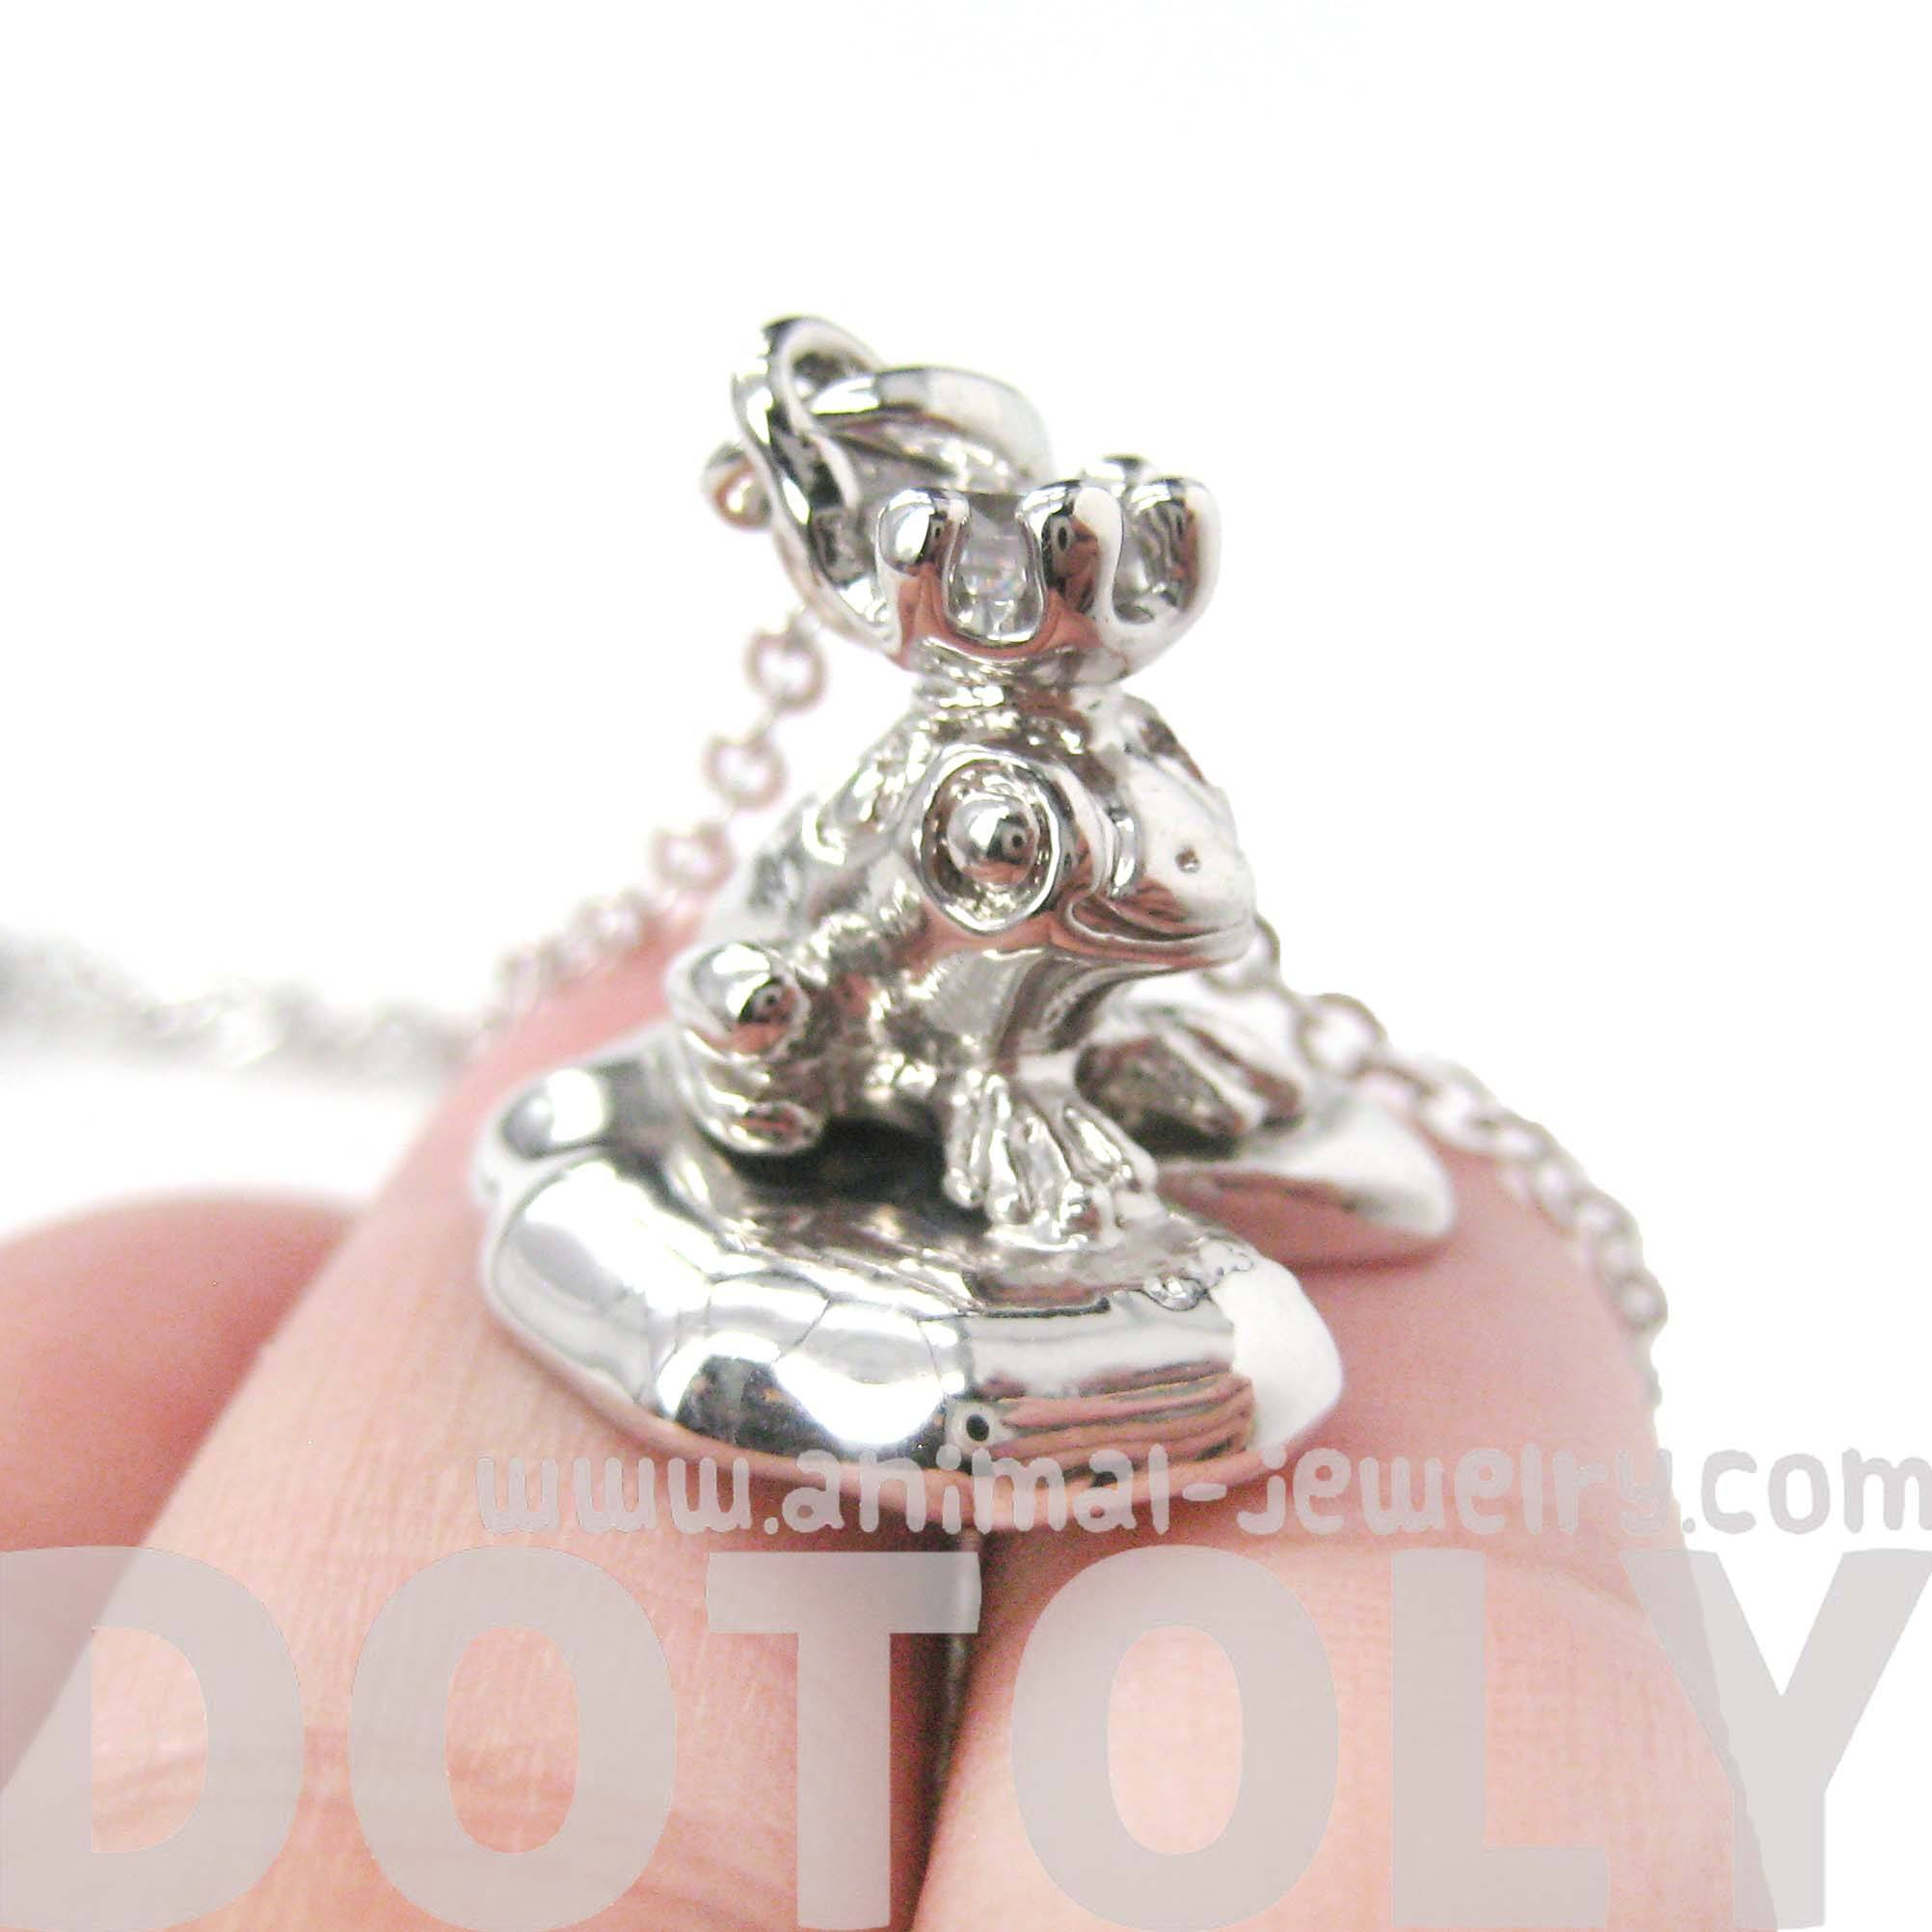 Frog Prince Toad on A Lily Pad Animal Themed Pendant Necklace in Shiny Silver